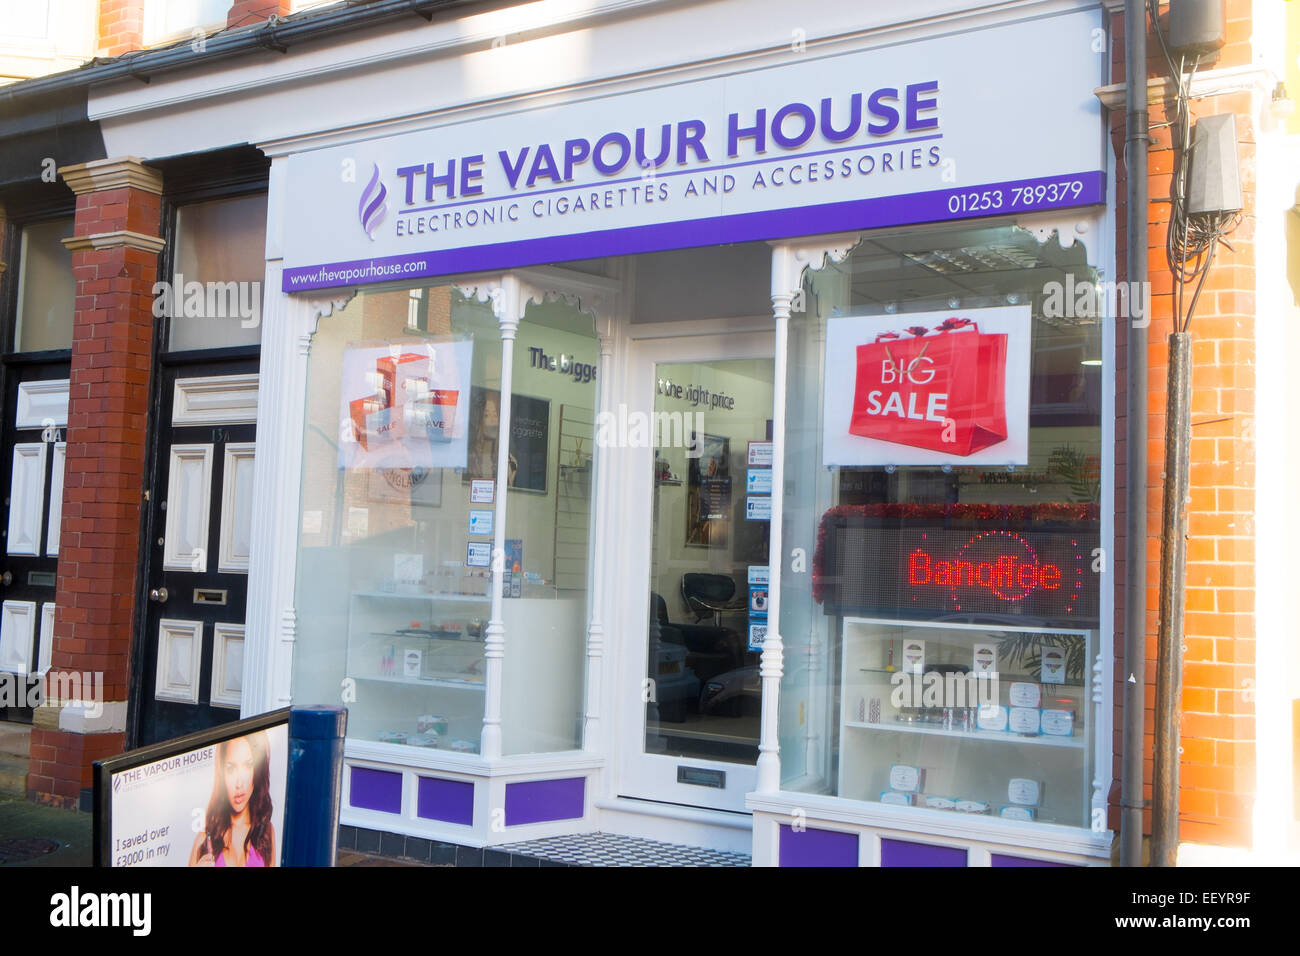 Electronic cigarette house